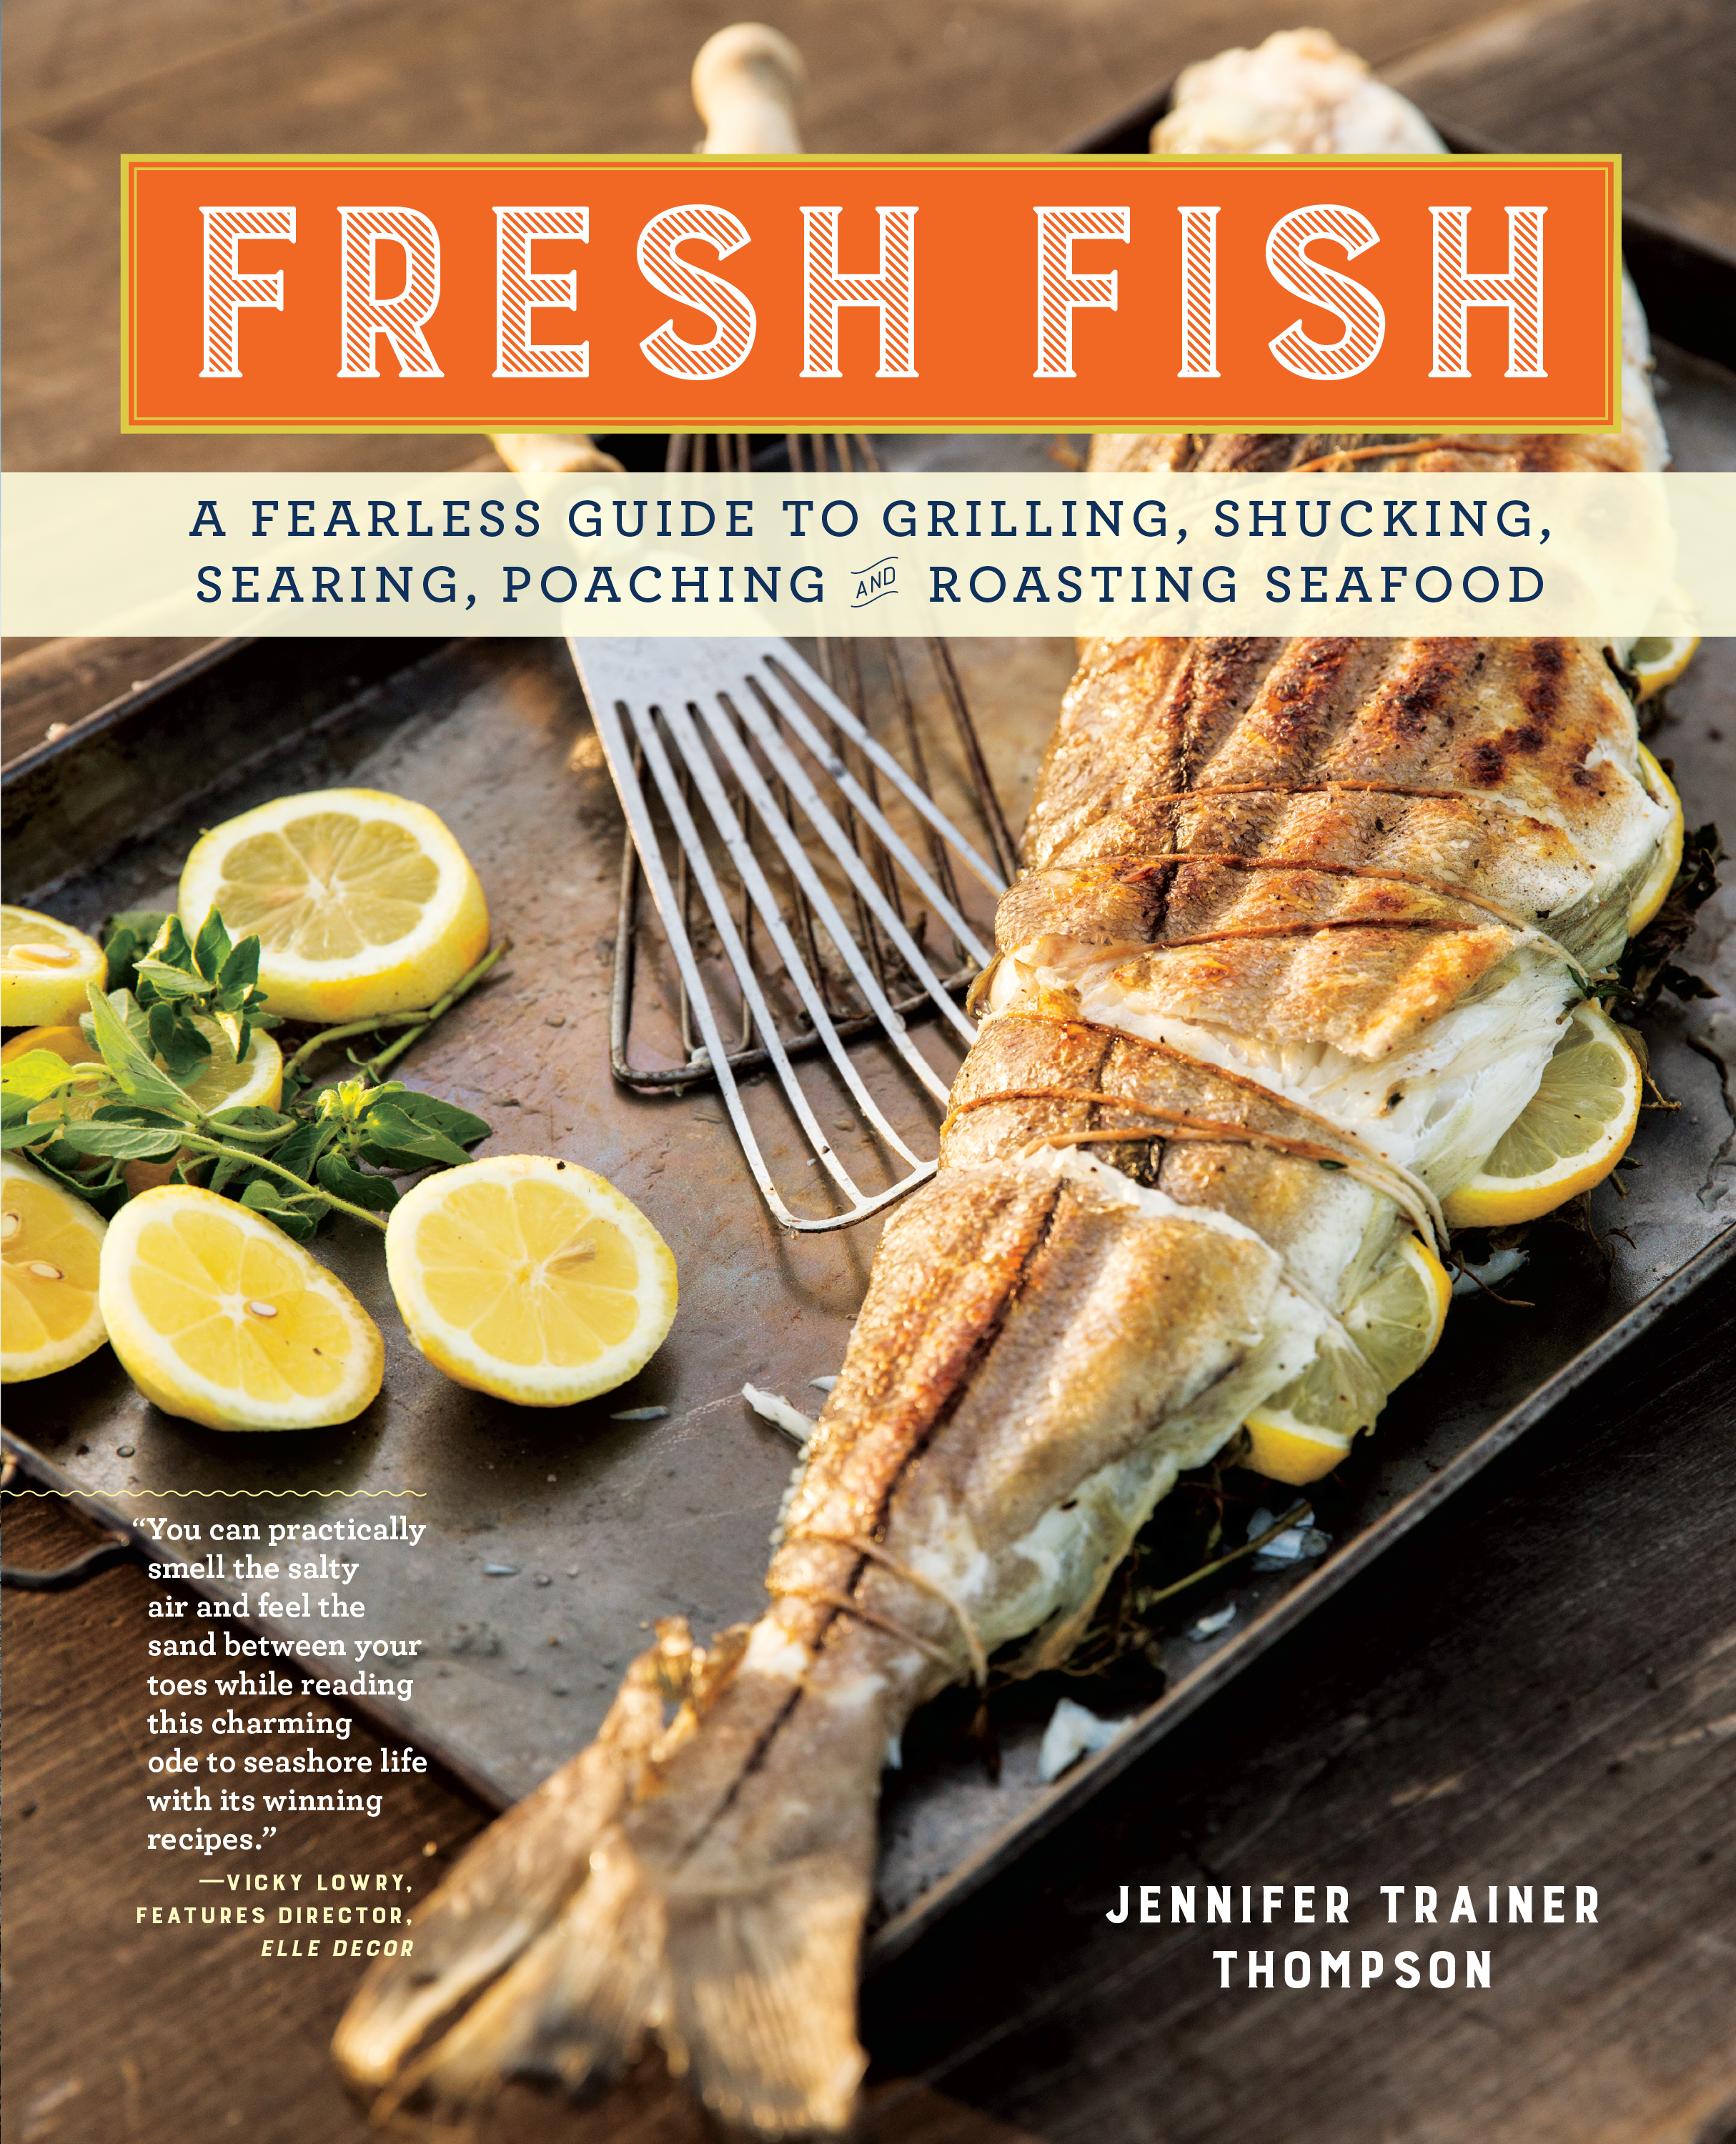 Fresh Fish A Fearless Guide to Grilling, Shucking, Searing, Poaching, and Roasting Seafood - Jennifer Trainer Thompson